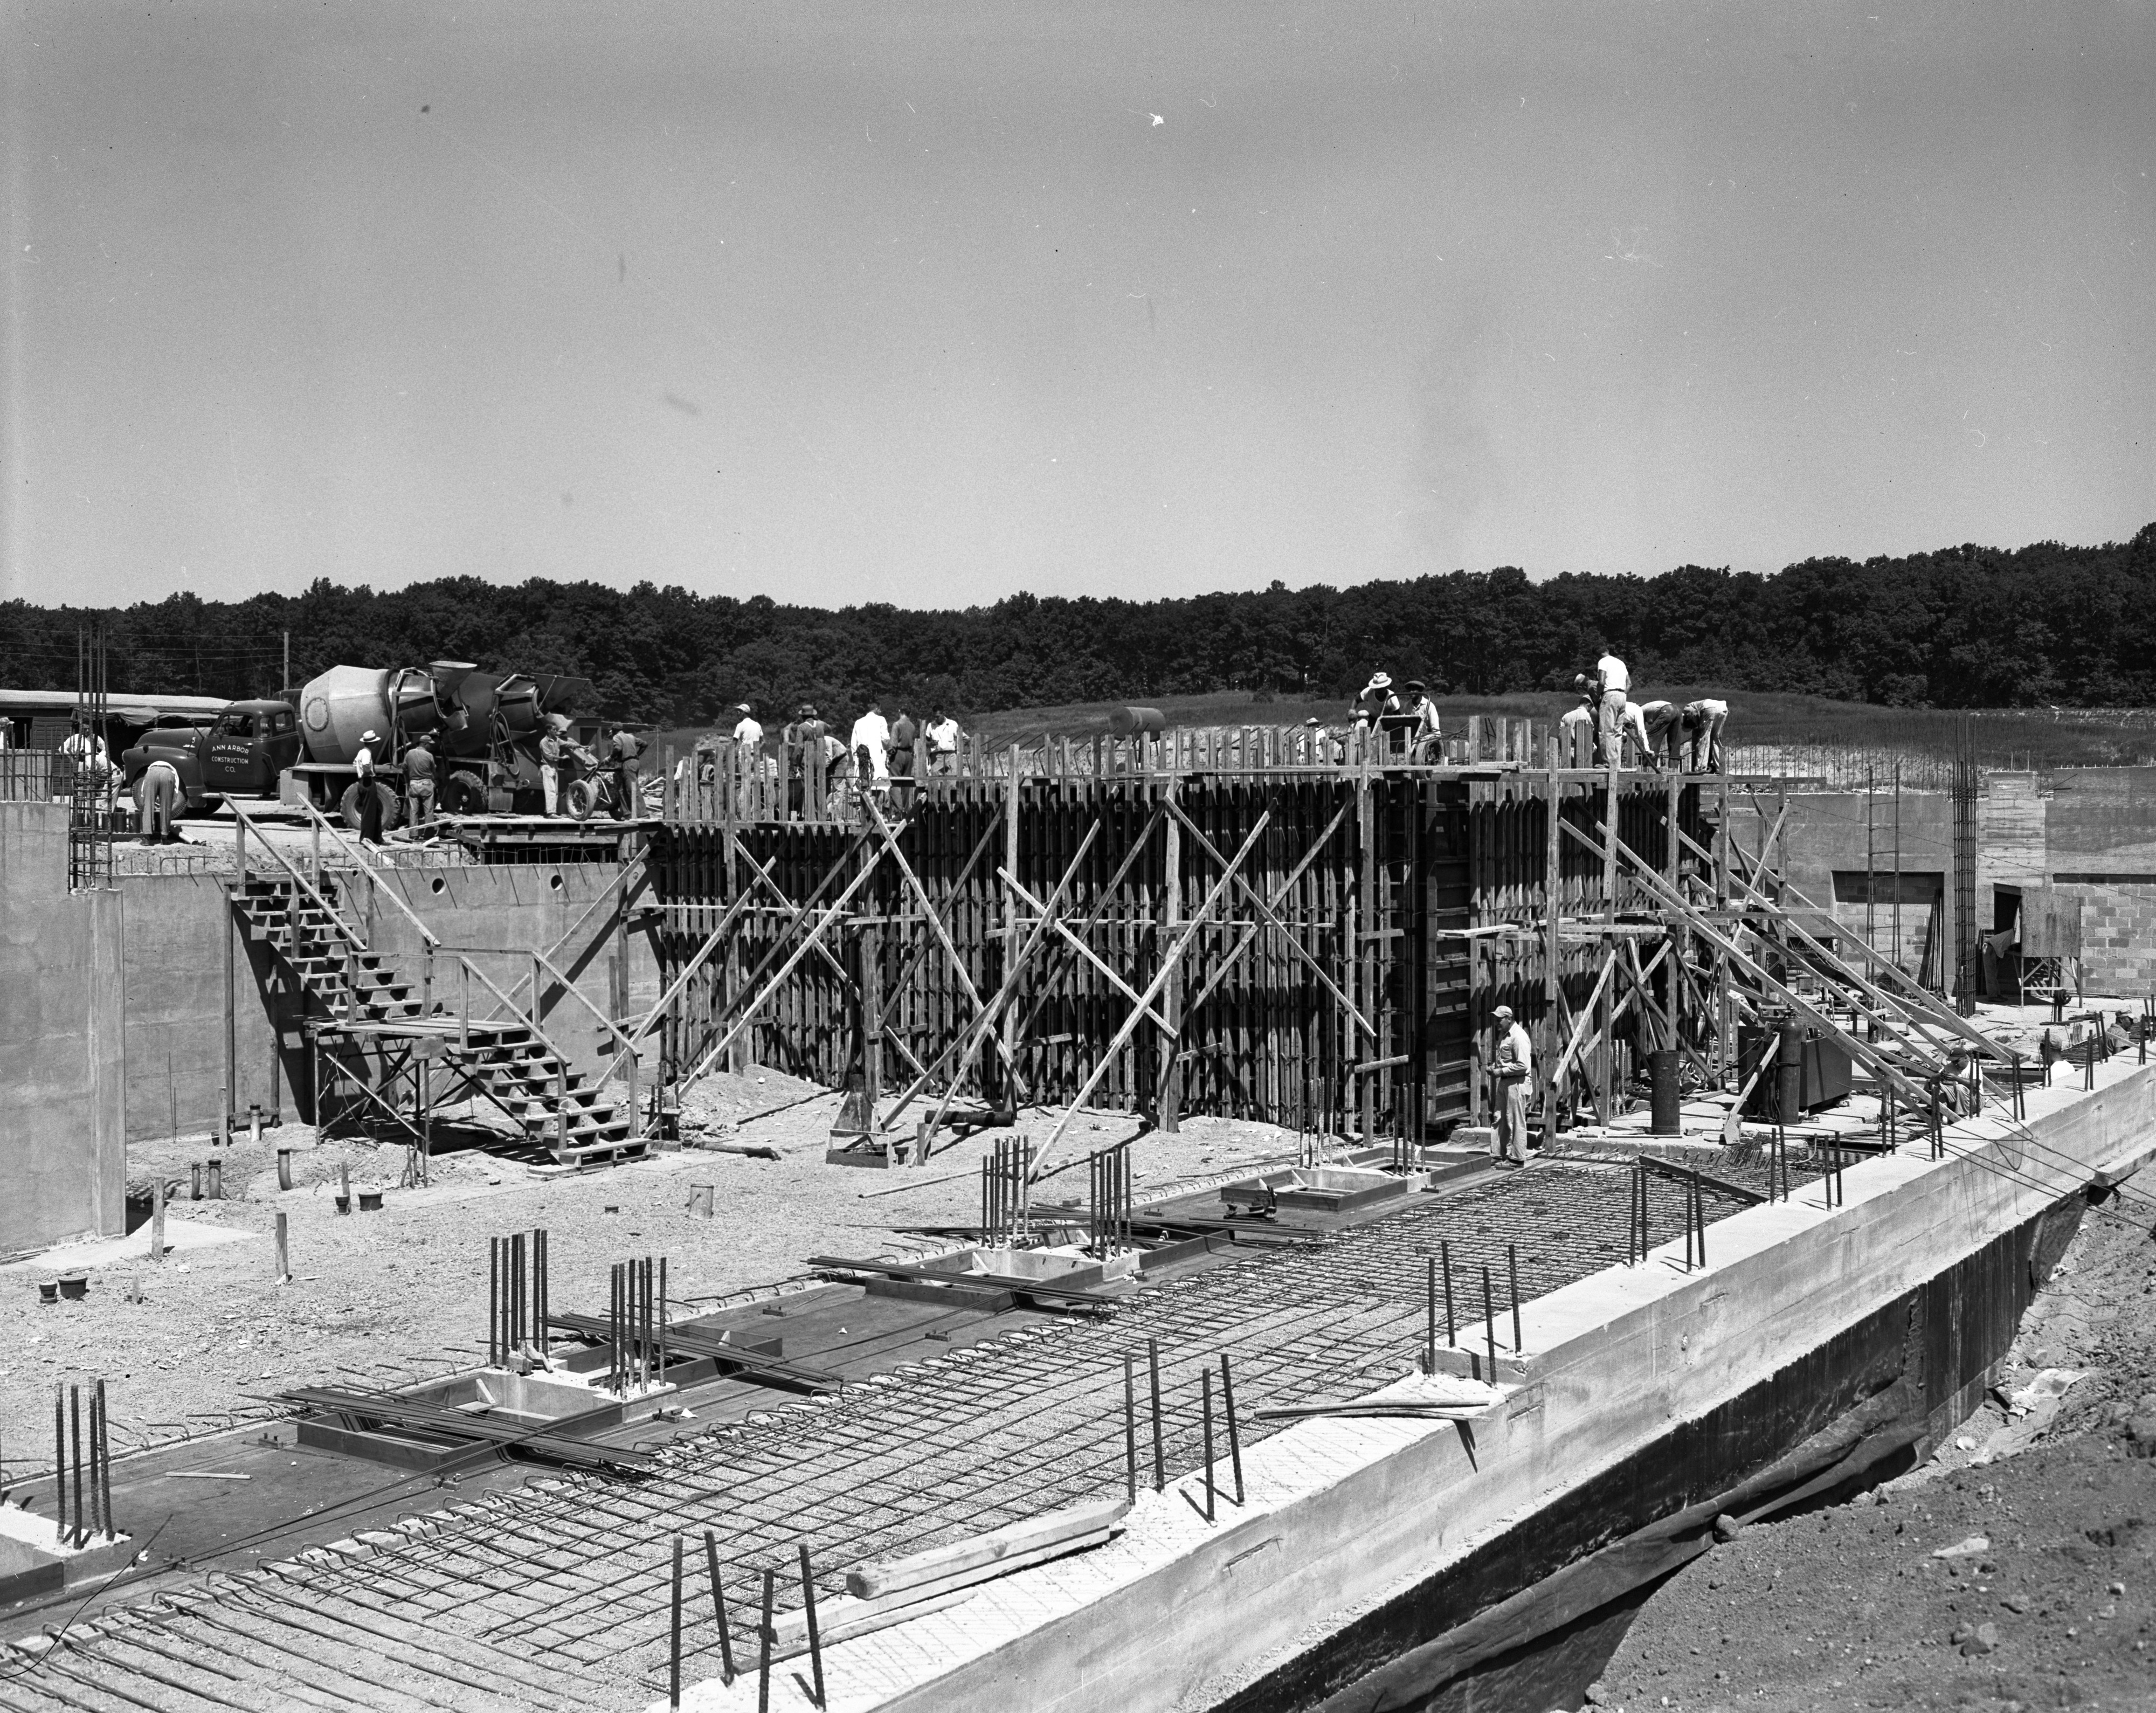 Extra-thick concrete poured for walls and floor of the Phoenix Memorial Building on North Campus, August 1954 image